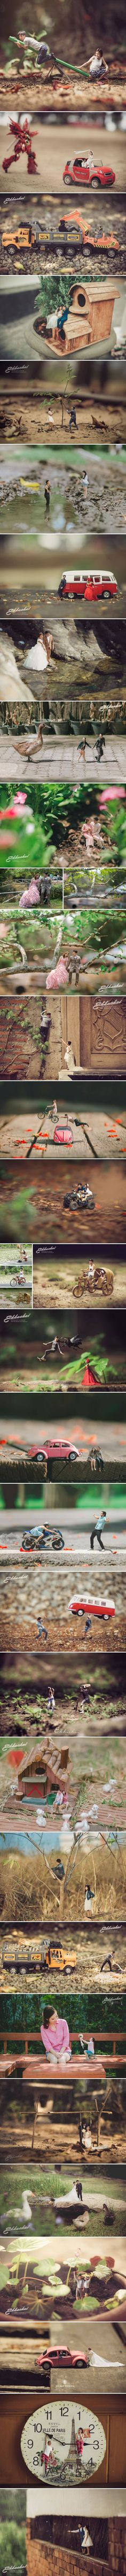 Miniature photography - this wedding photographer turns couples into miniature people ekkachai saelow Photography Lessons, Photoshop Photography, Toys Photography, Macro Photography, Creative Photography, Wedding Photography, Photografy Art, Formation Photo, Miniature Photography